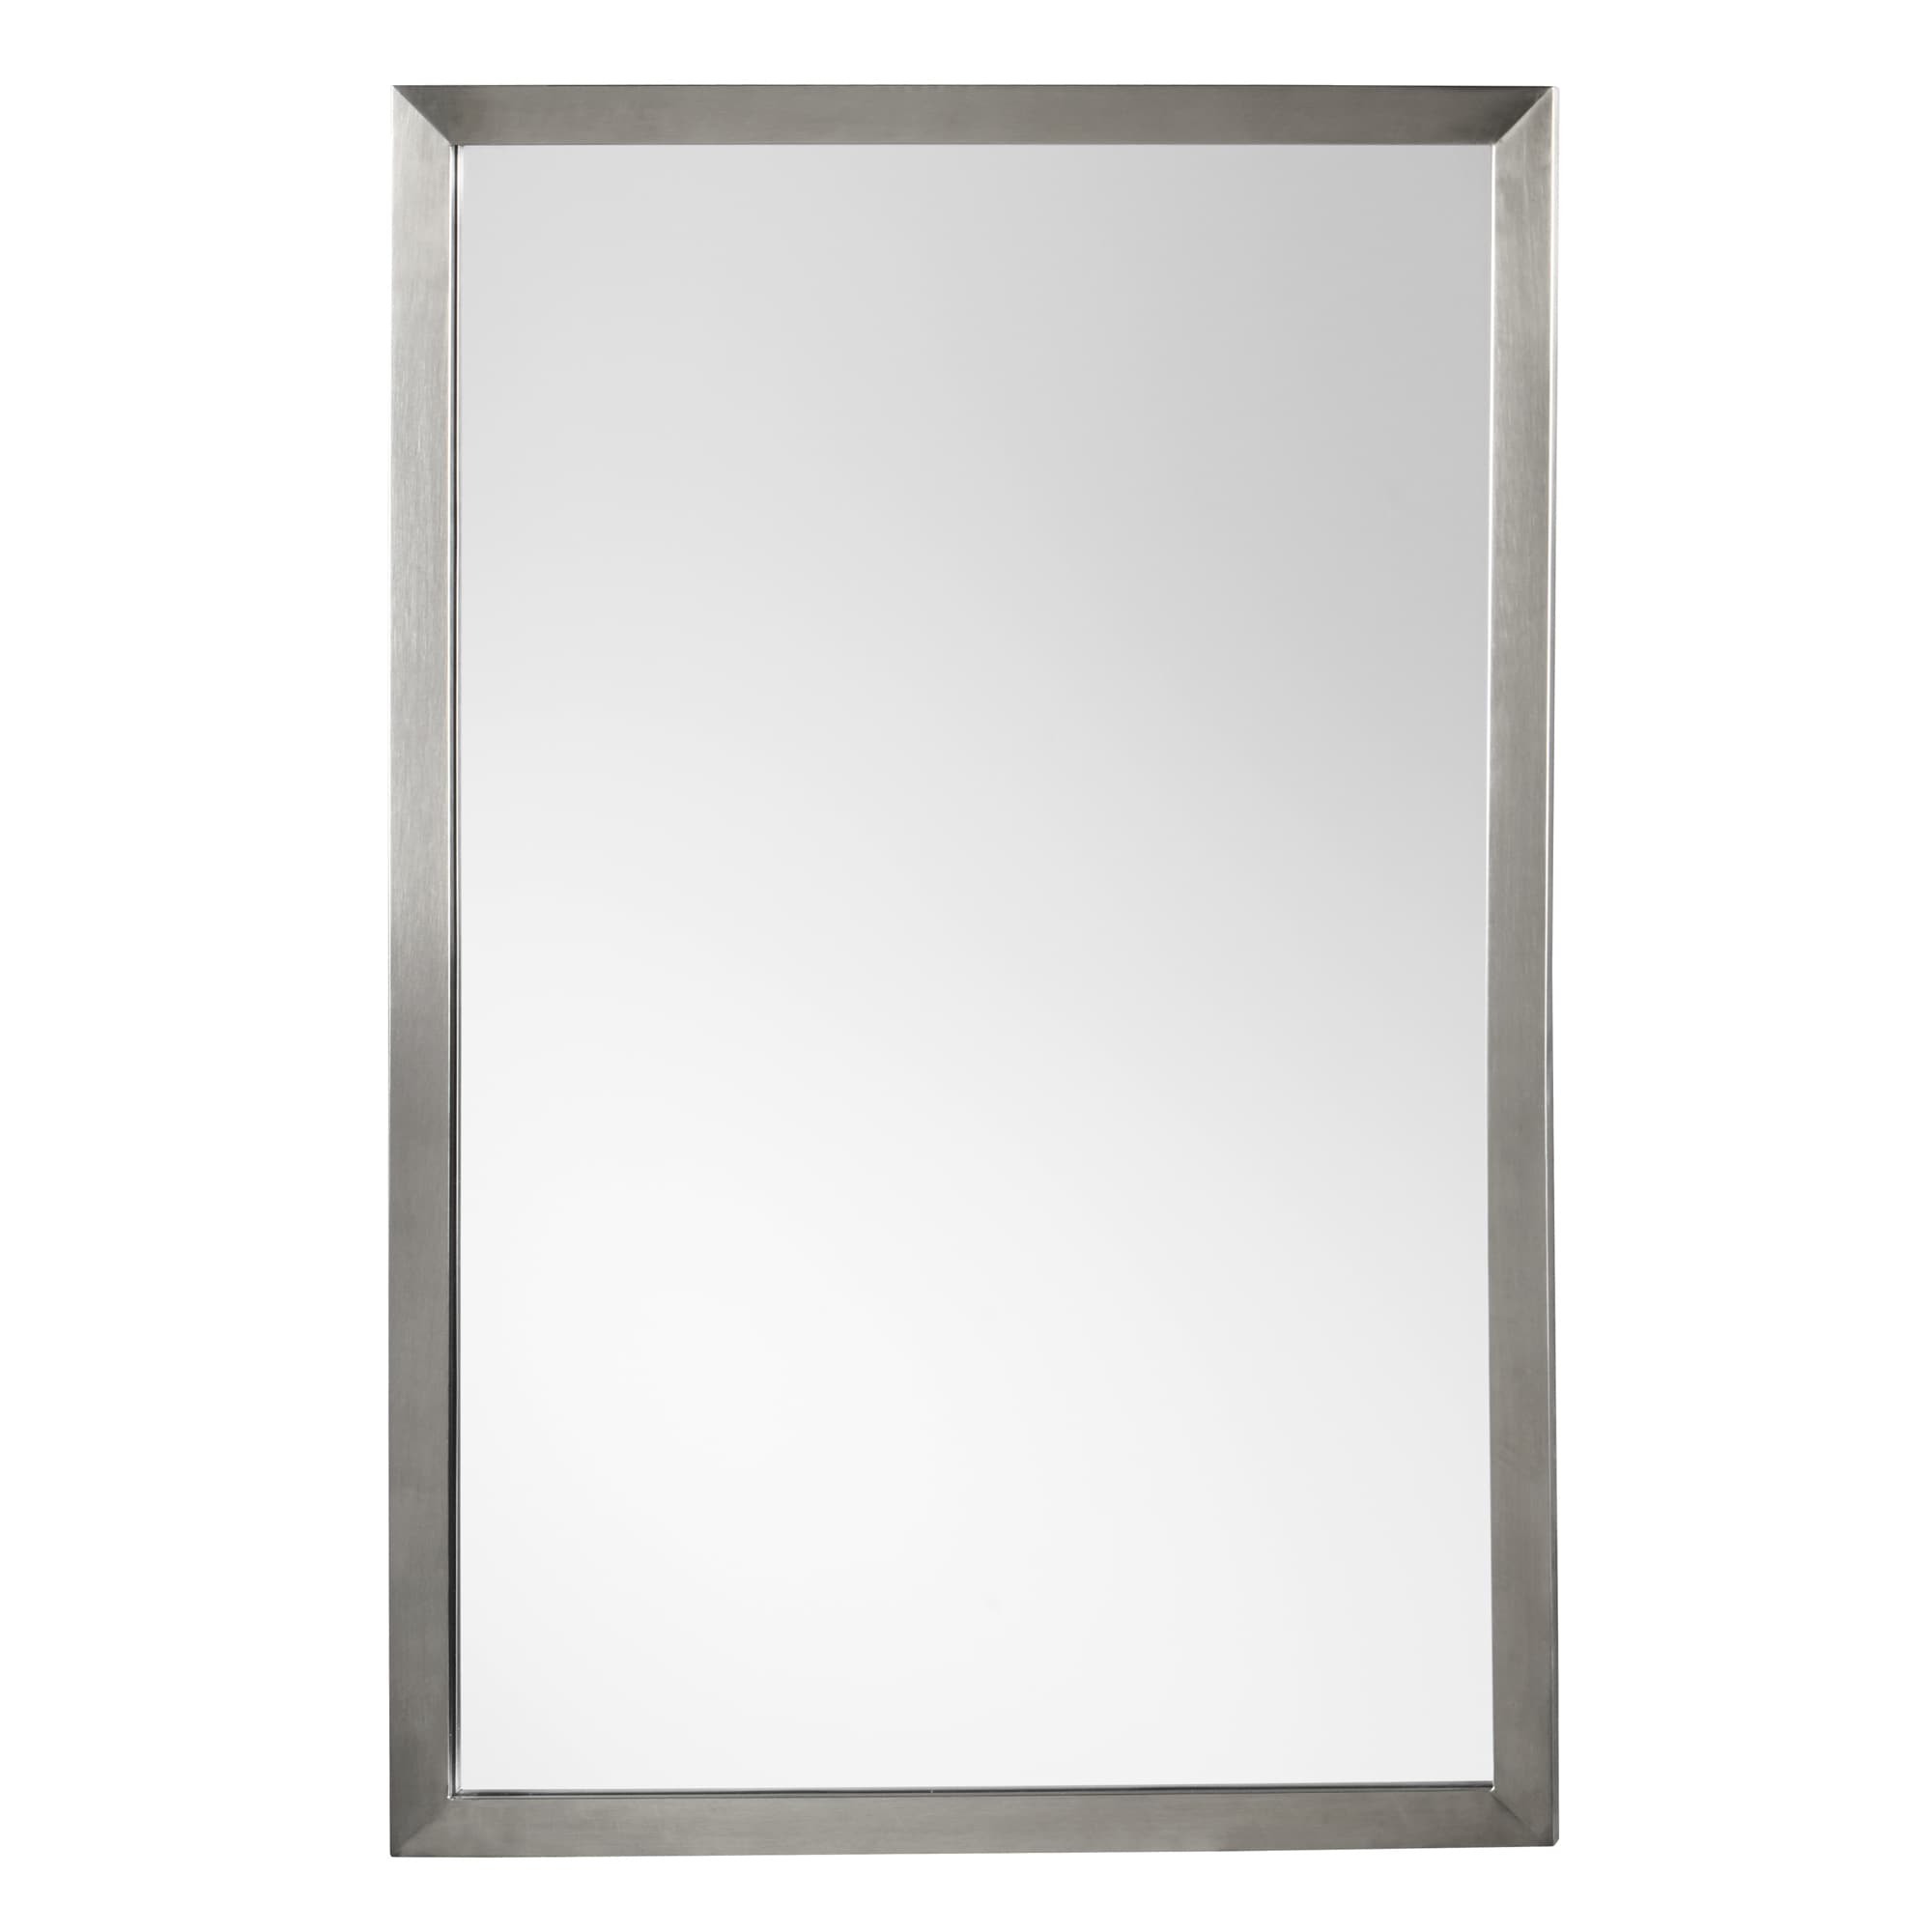 Shop Ronbow Emile Metal Frame Bathroom Vanity Mirror Overstock 14456586 Silver Chrome